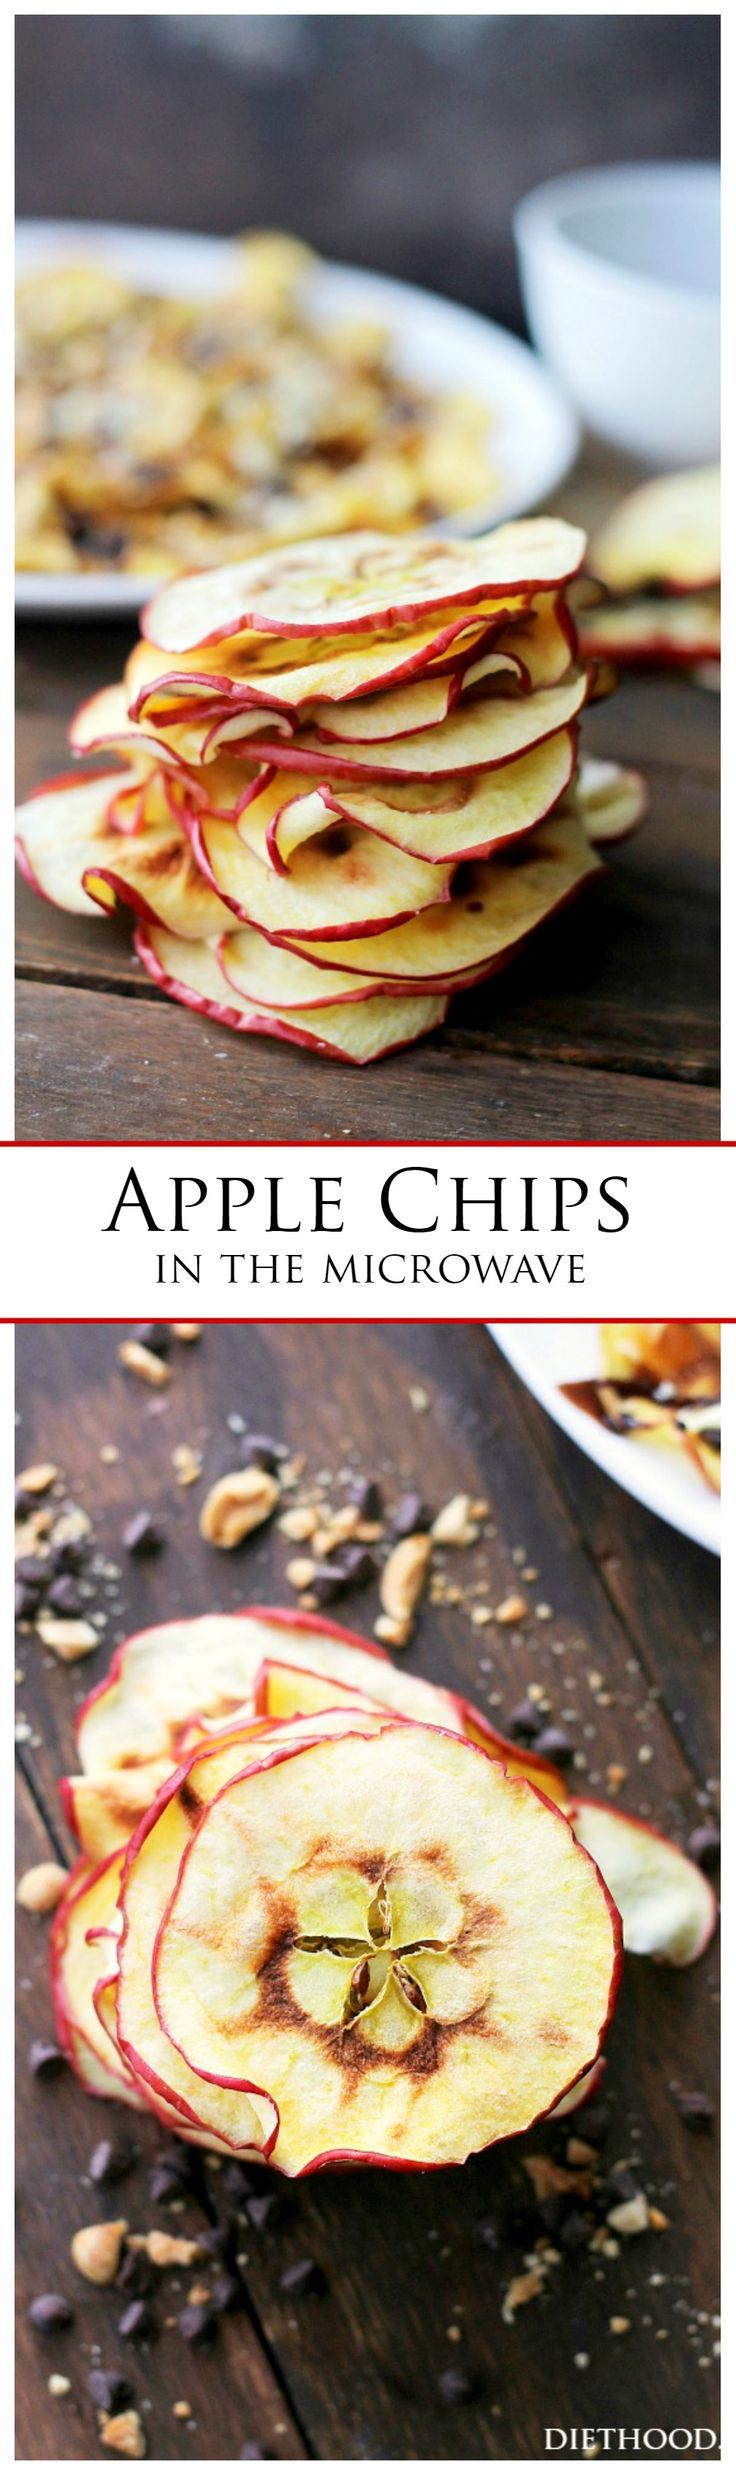 Apple chips are a top saved snacking idea for college students. These thin and crispy chips are made in the microwave! All you need is a few minutes before you can devour this delicious and super healthy fall snack.